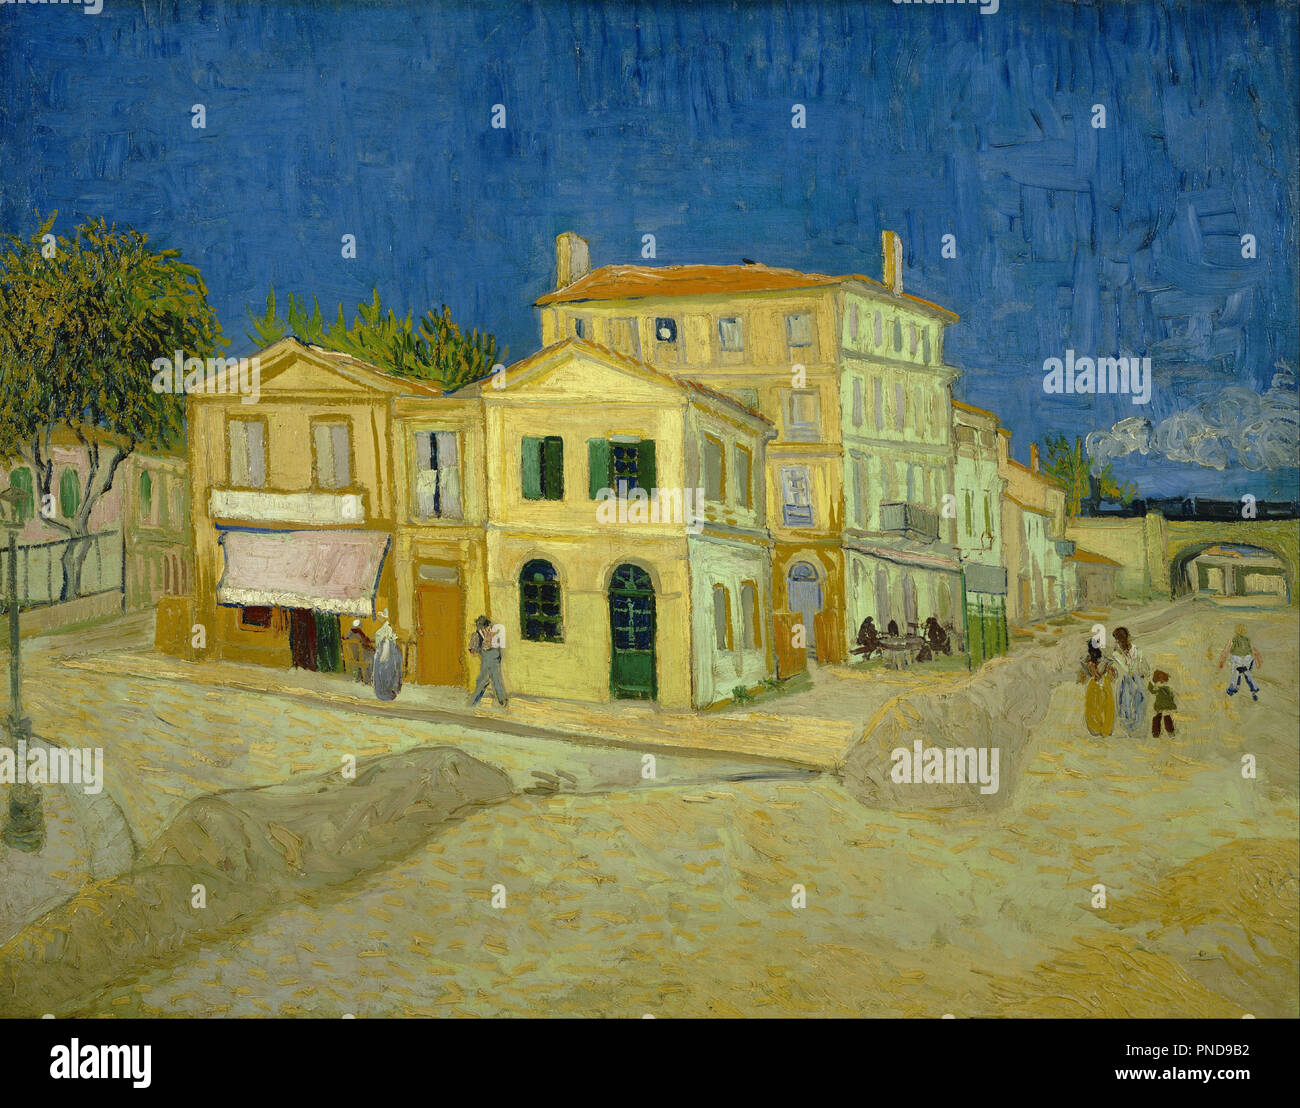 La Chambre à Coucher Van Gogh Wikipedia Van Gogh House Painting Stock Photos Van Gogh House Painting